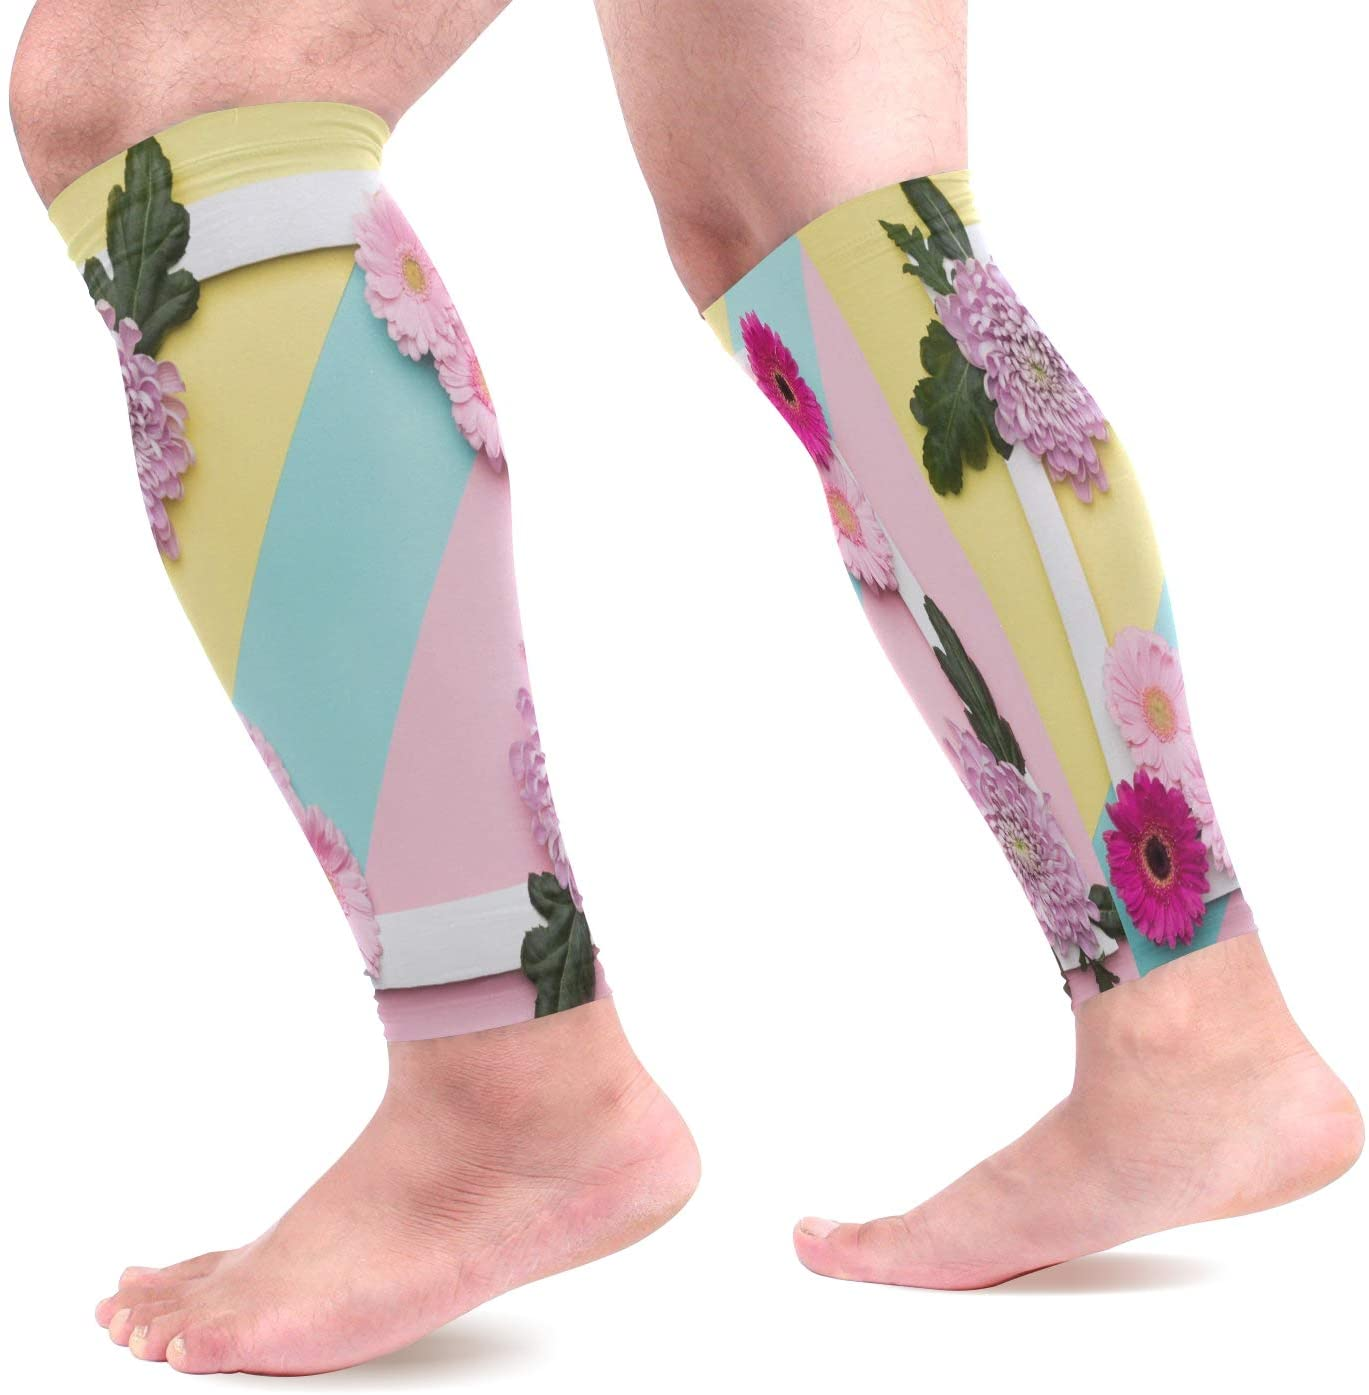 Calf Compression Sleeves Valentine's Day Or Birthday Pastel Candy Colours Leg Compression Socks for Runners Shin Splint Varicose Vein & Calf Pain Relief - Calf Guard for Running Cycling Nurses Women